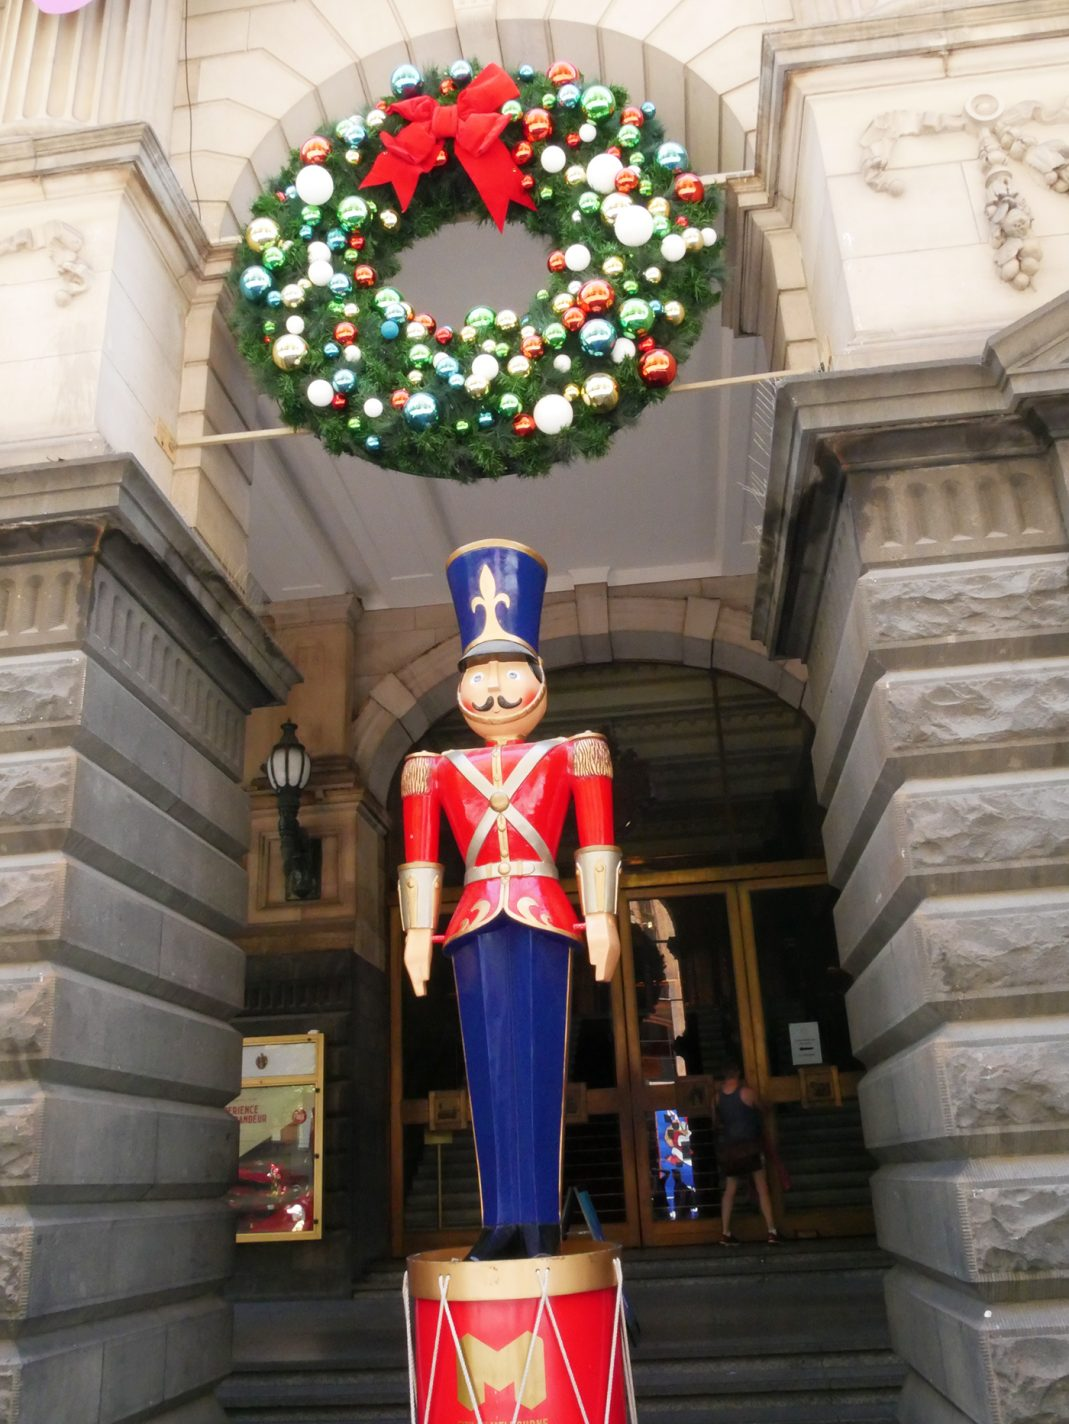 Melbourne in kerstsfeer